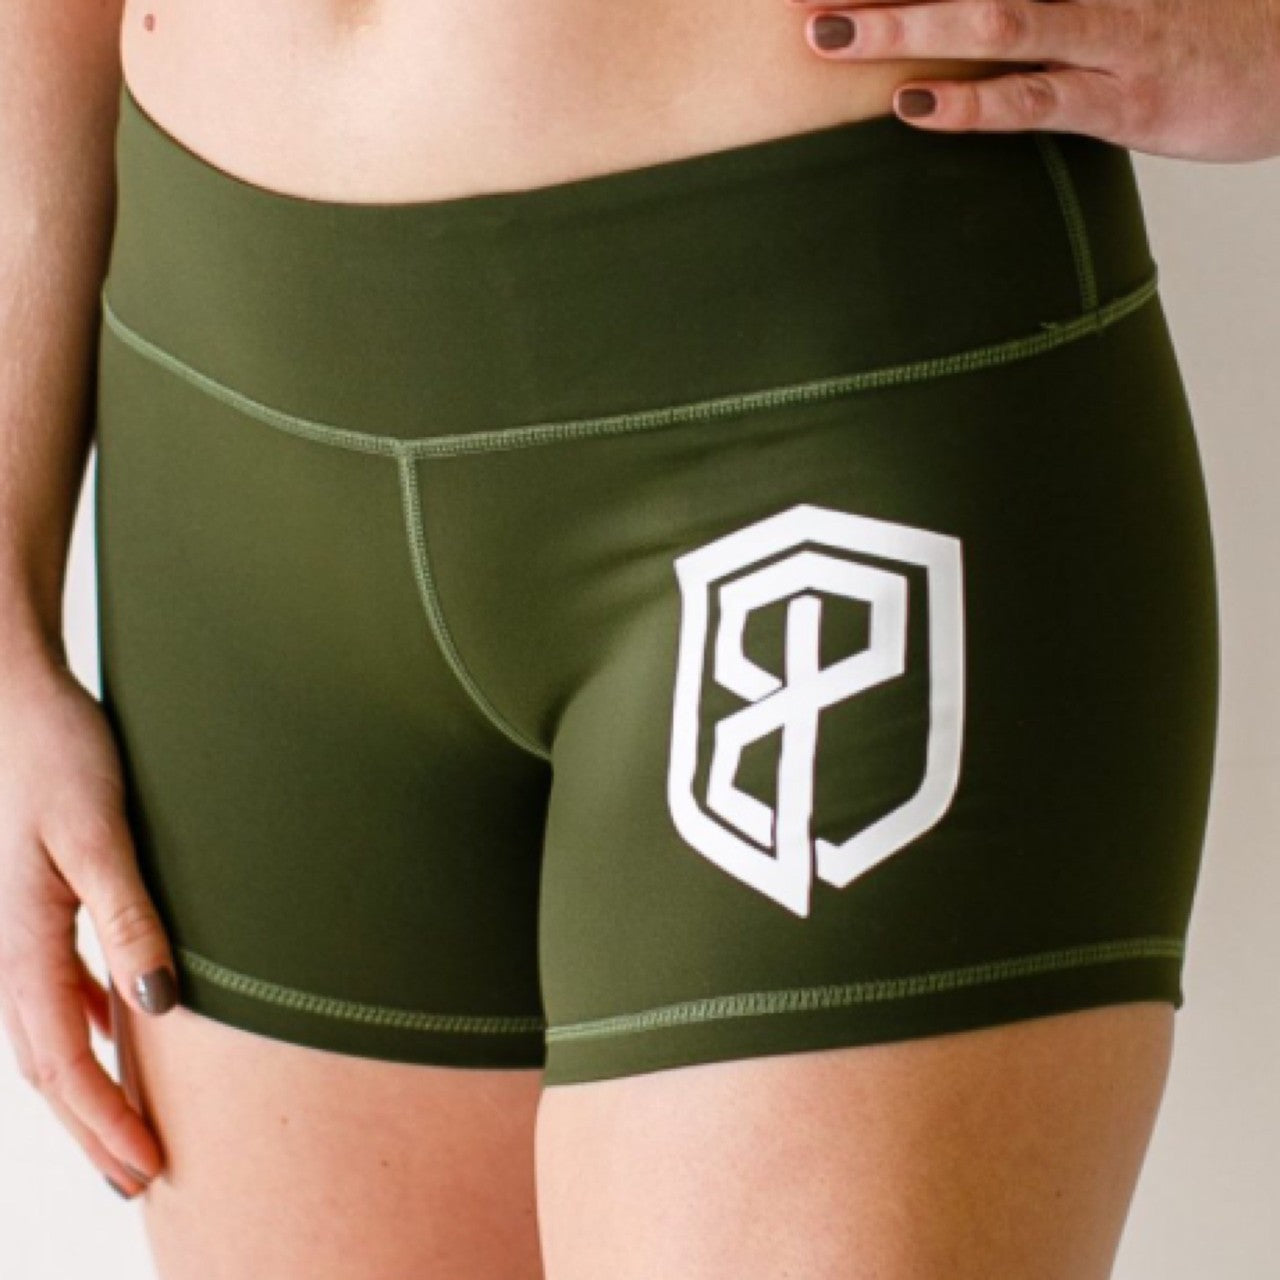 Double Take Booty Shorts (Tactical Green)